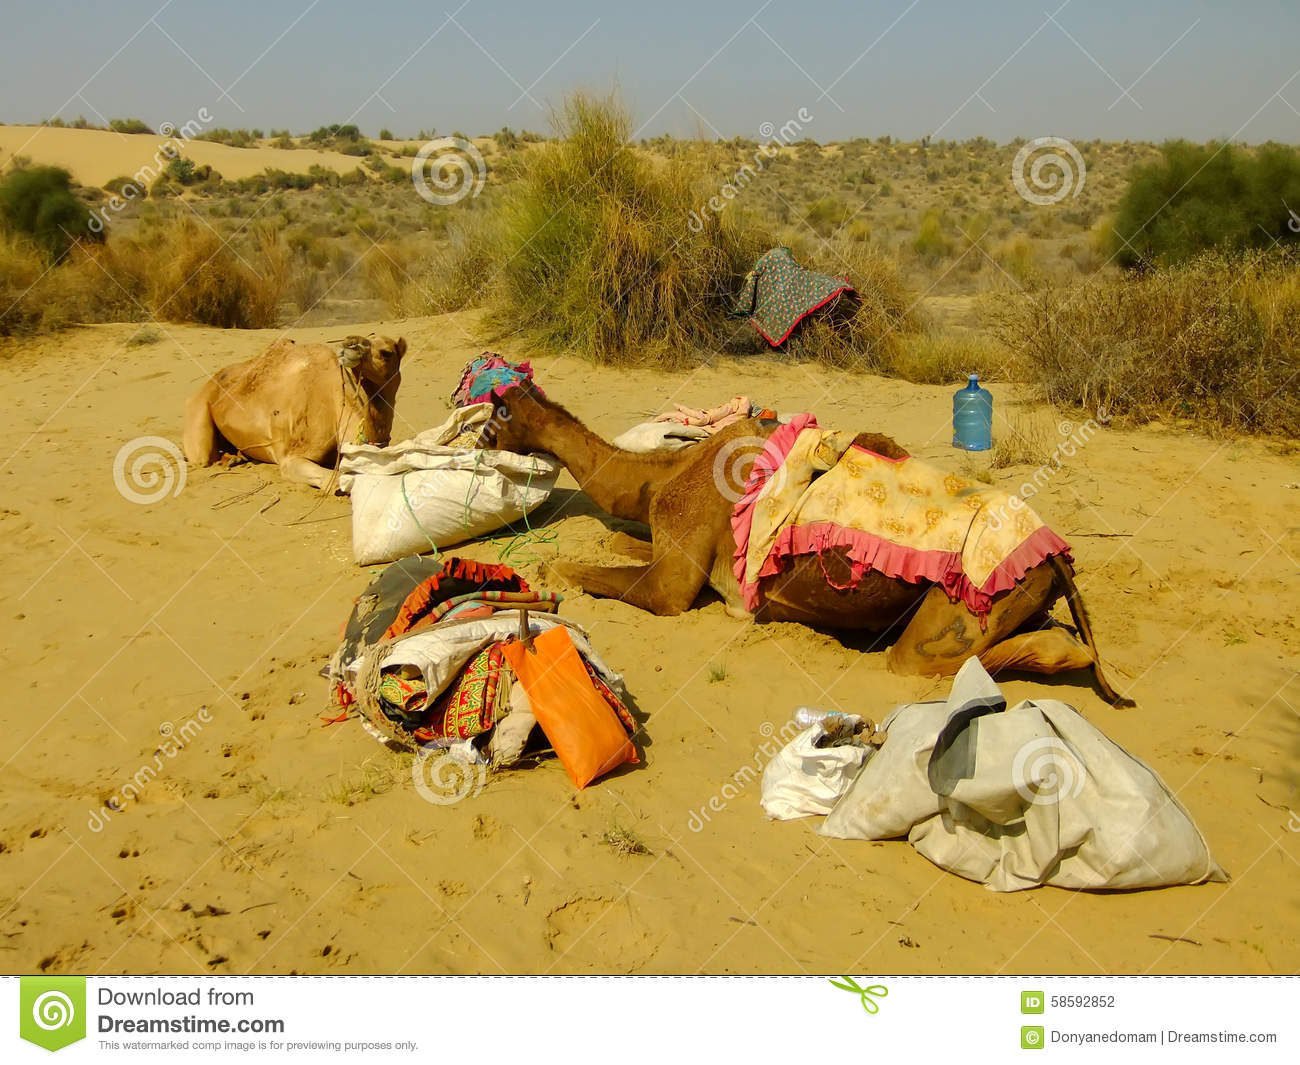 Camels resting during camel safari, Thar desert, India